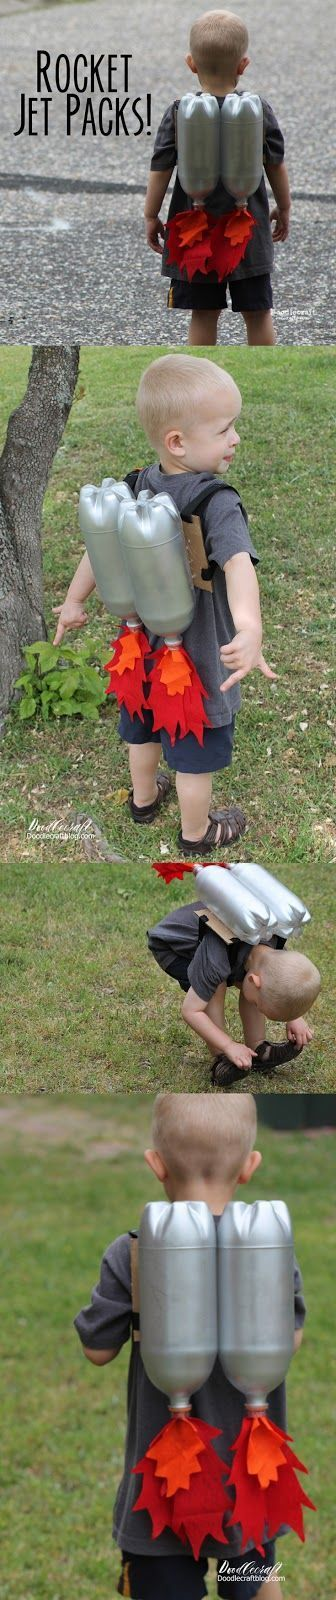 Rocket Jet Pack craft for kids!  Great for little imaginations, space birthday parties or play dates!